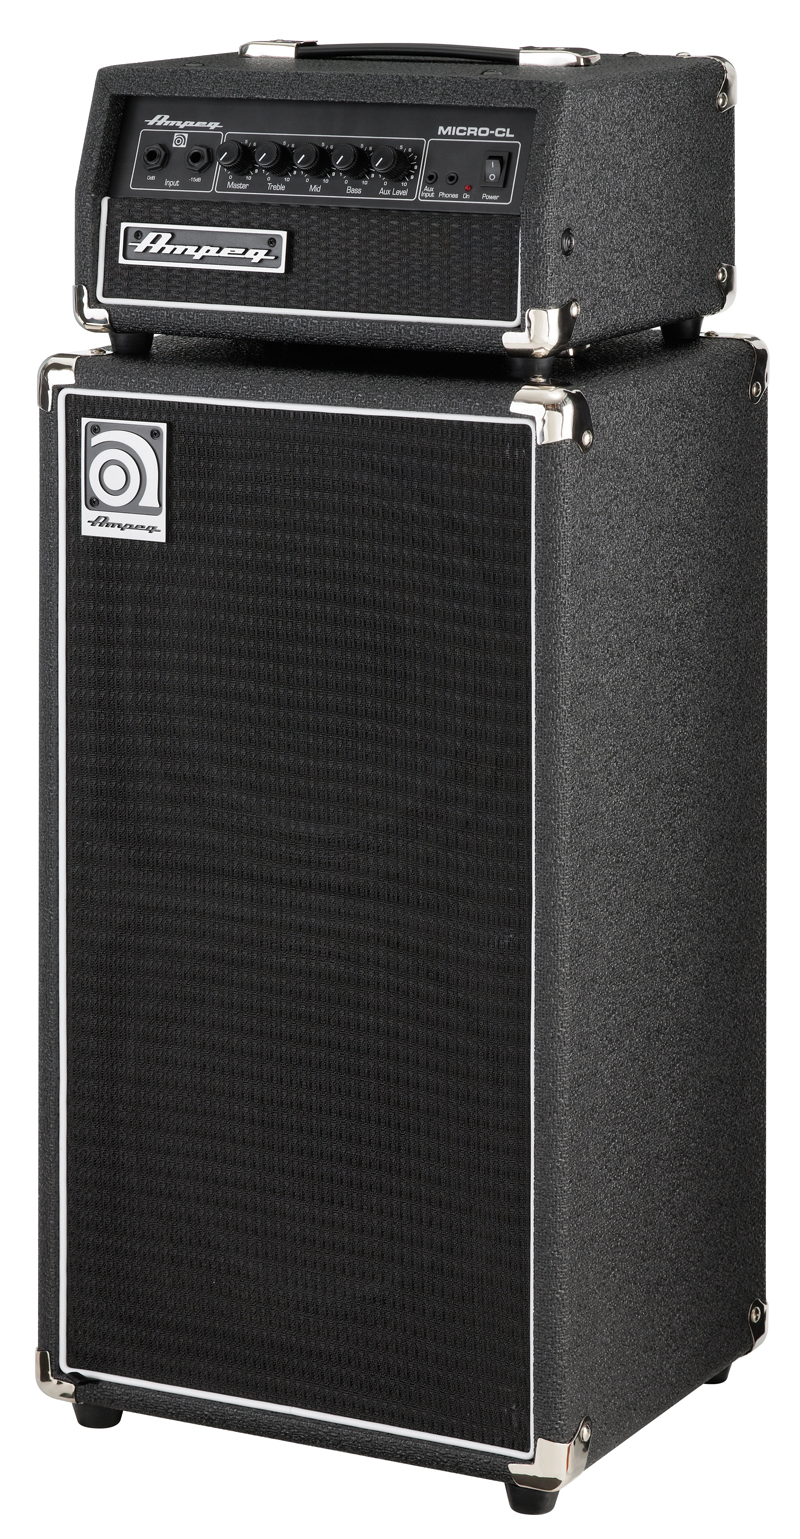 ampeg svt micro cl stack 100watt 2x10zoll solid state bass stack gitarre bass. Black Bedroom Furniture Sets. Home Design Ideas